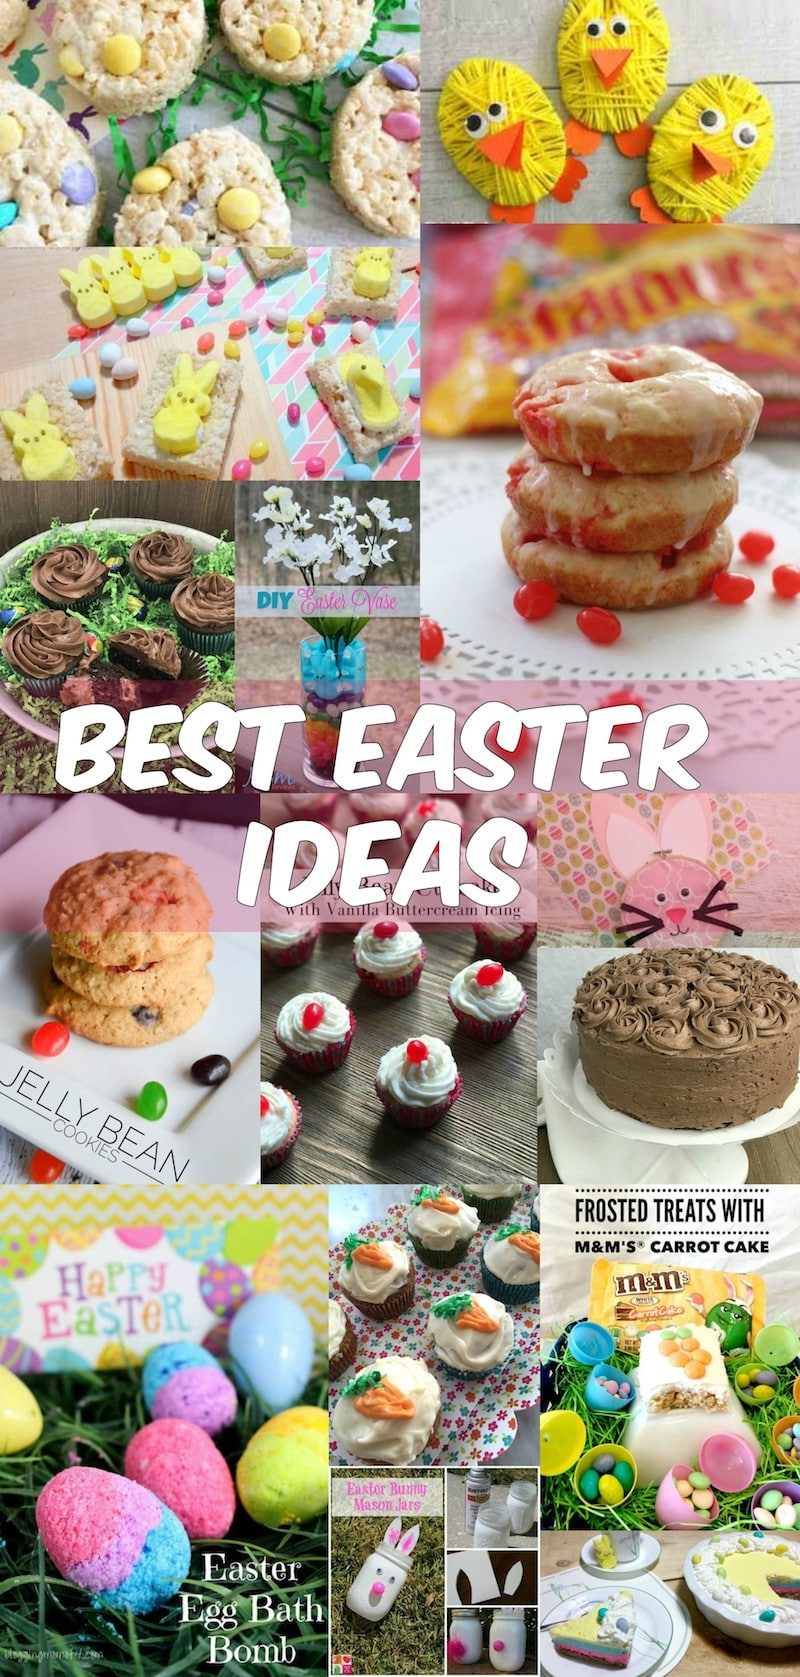 Best easter ideas recipes crafts and gifts saving you dinero with easter just around the corner i wanted to share some easter ideas to help you negle Images